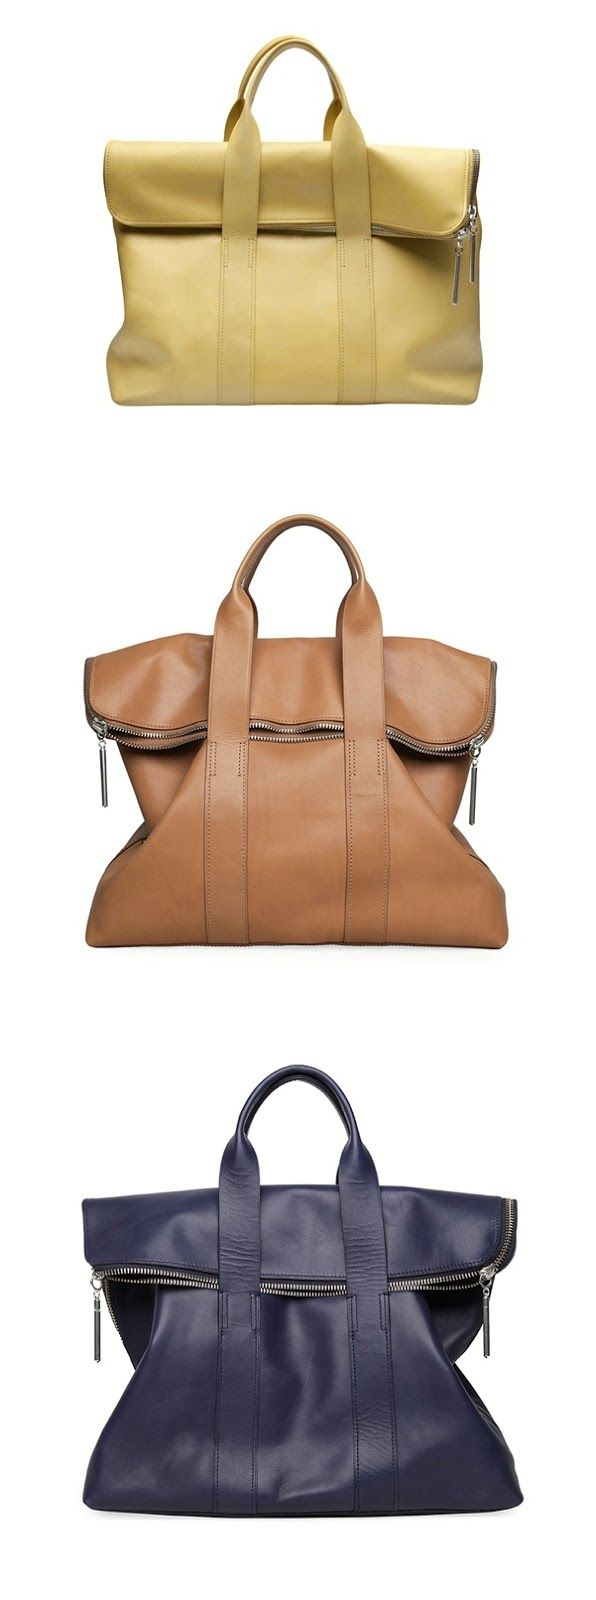 31 Hour Bag by 3.1 Philip Lim                     I am obsessed with this one